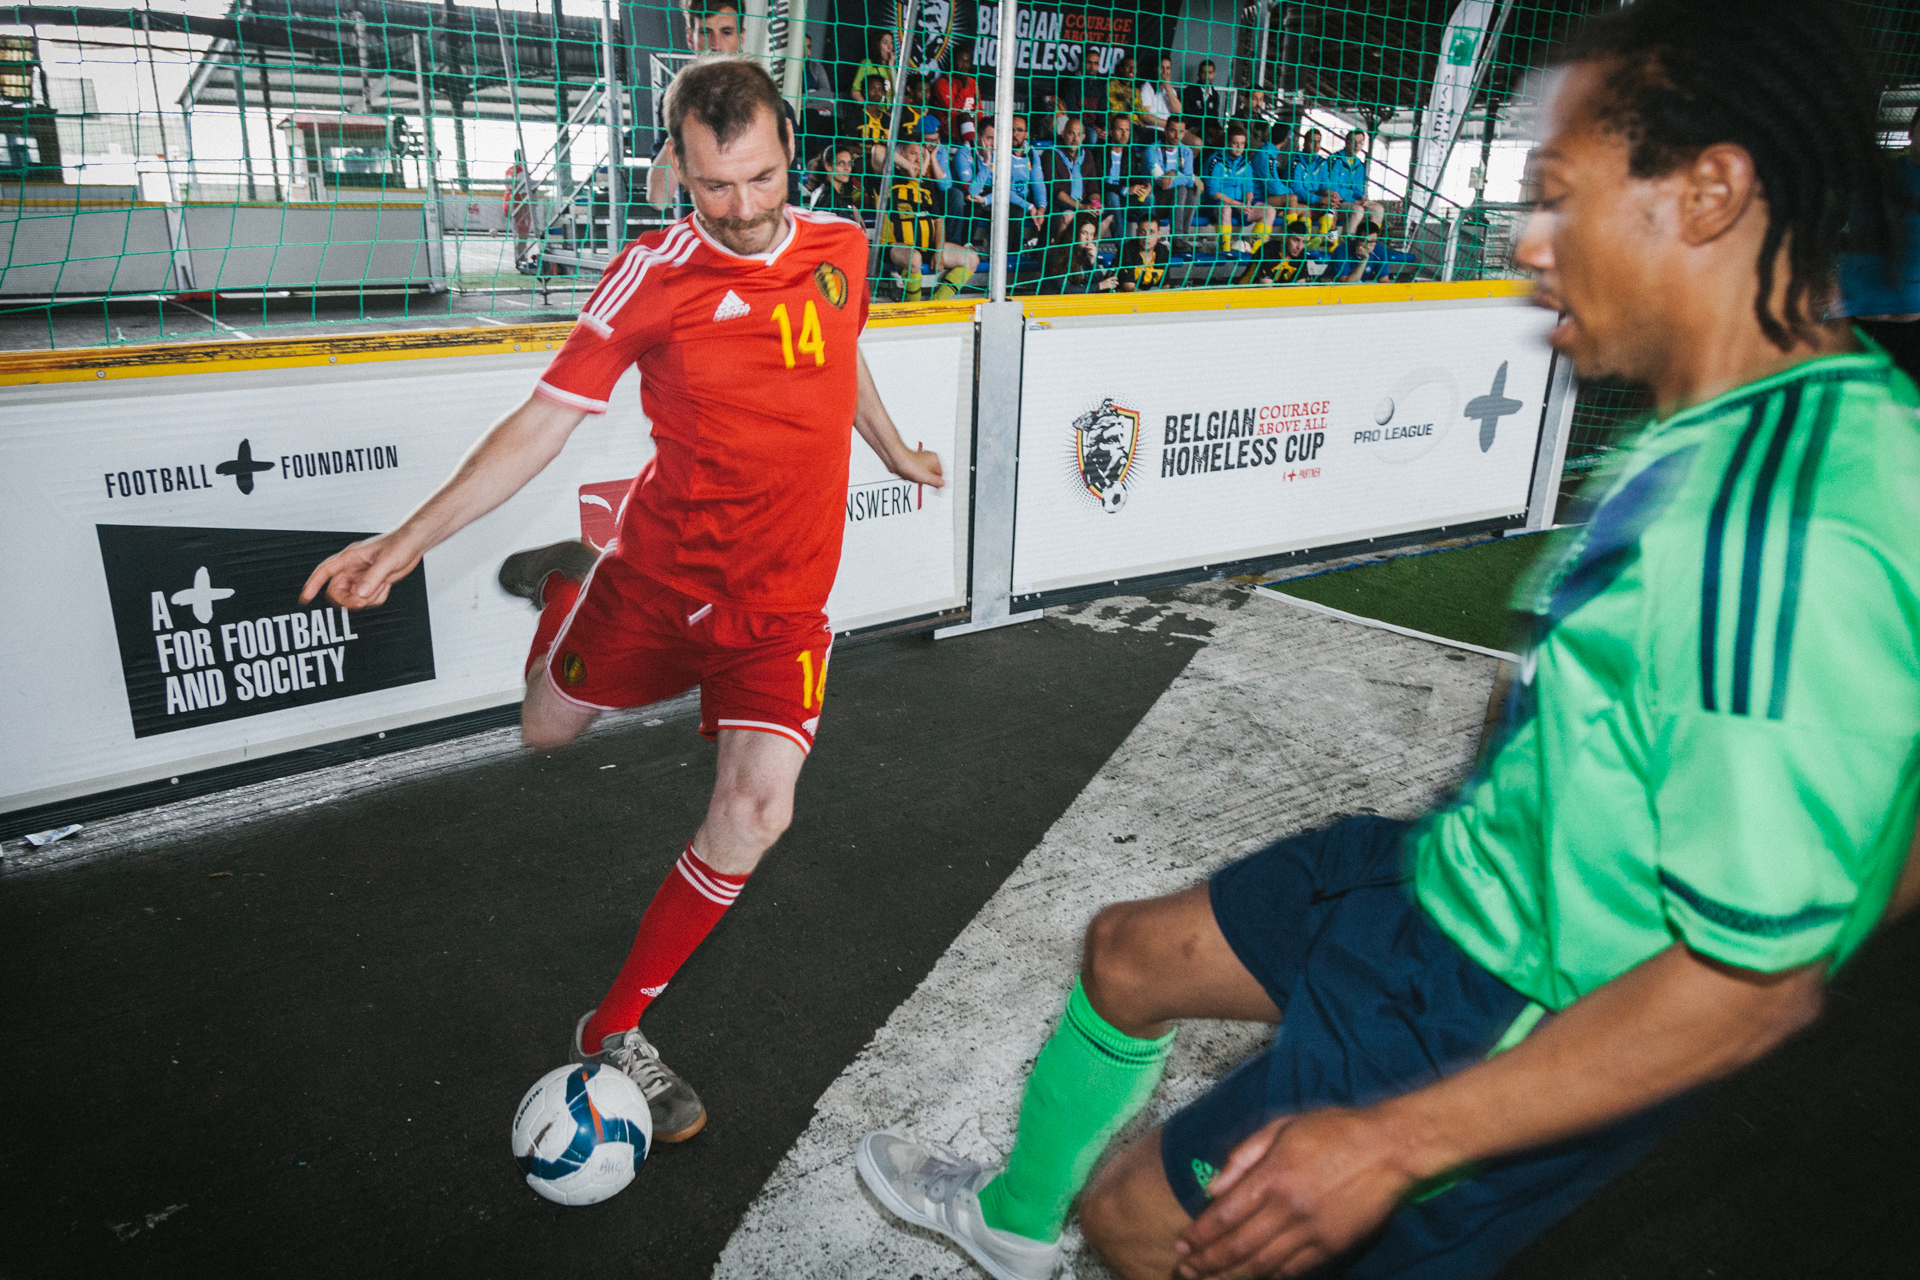 2016_BelgianHomelessCup_lores-102.jpg